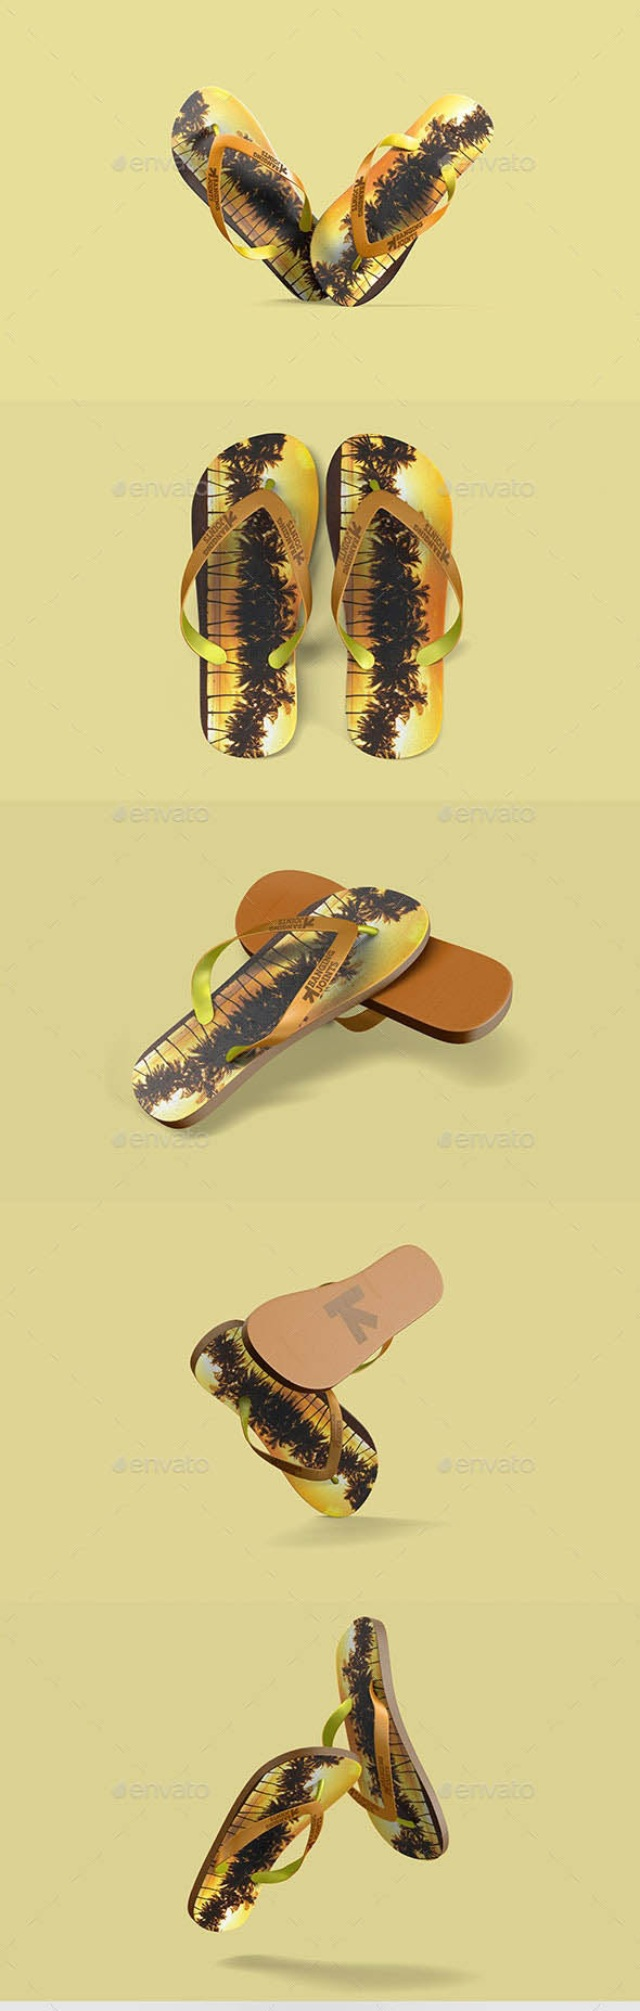 Flip Flops - Sandals MockUp by bangingjoints